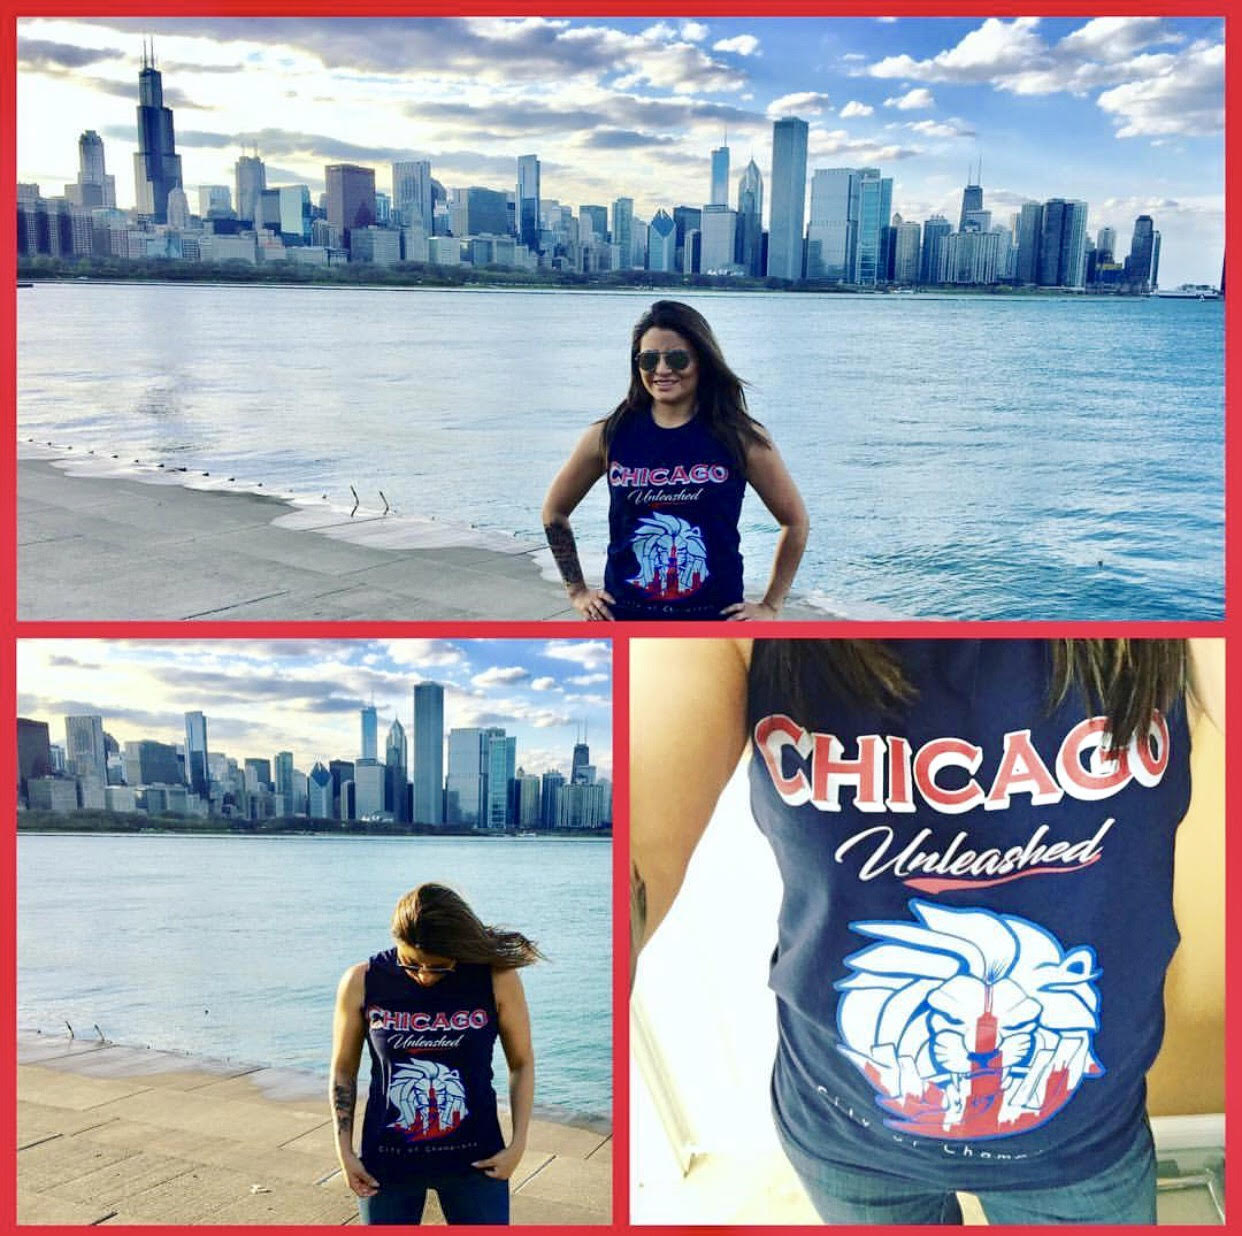 Amber IS Chicago Unleashed